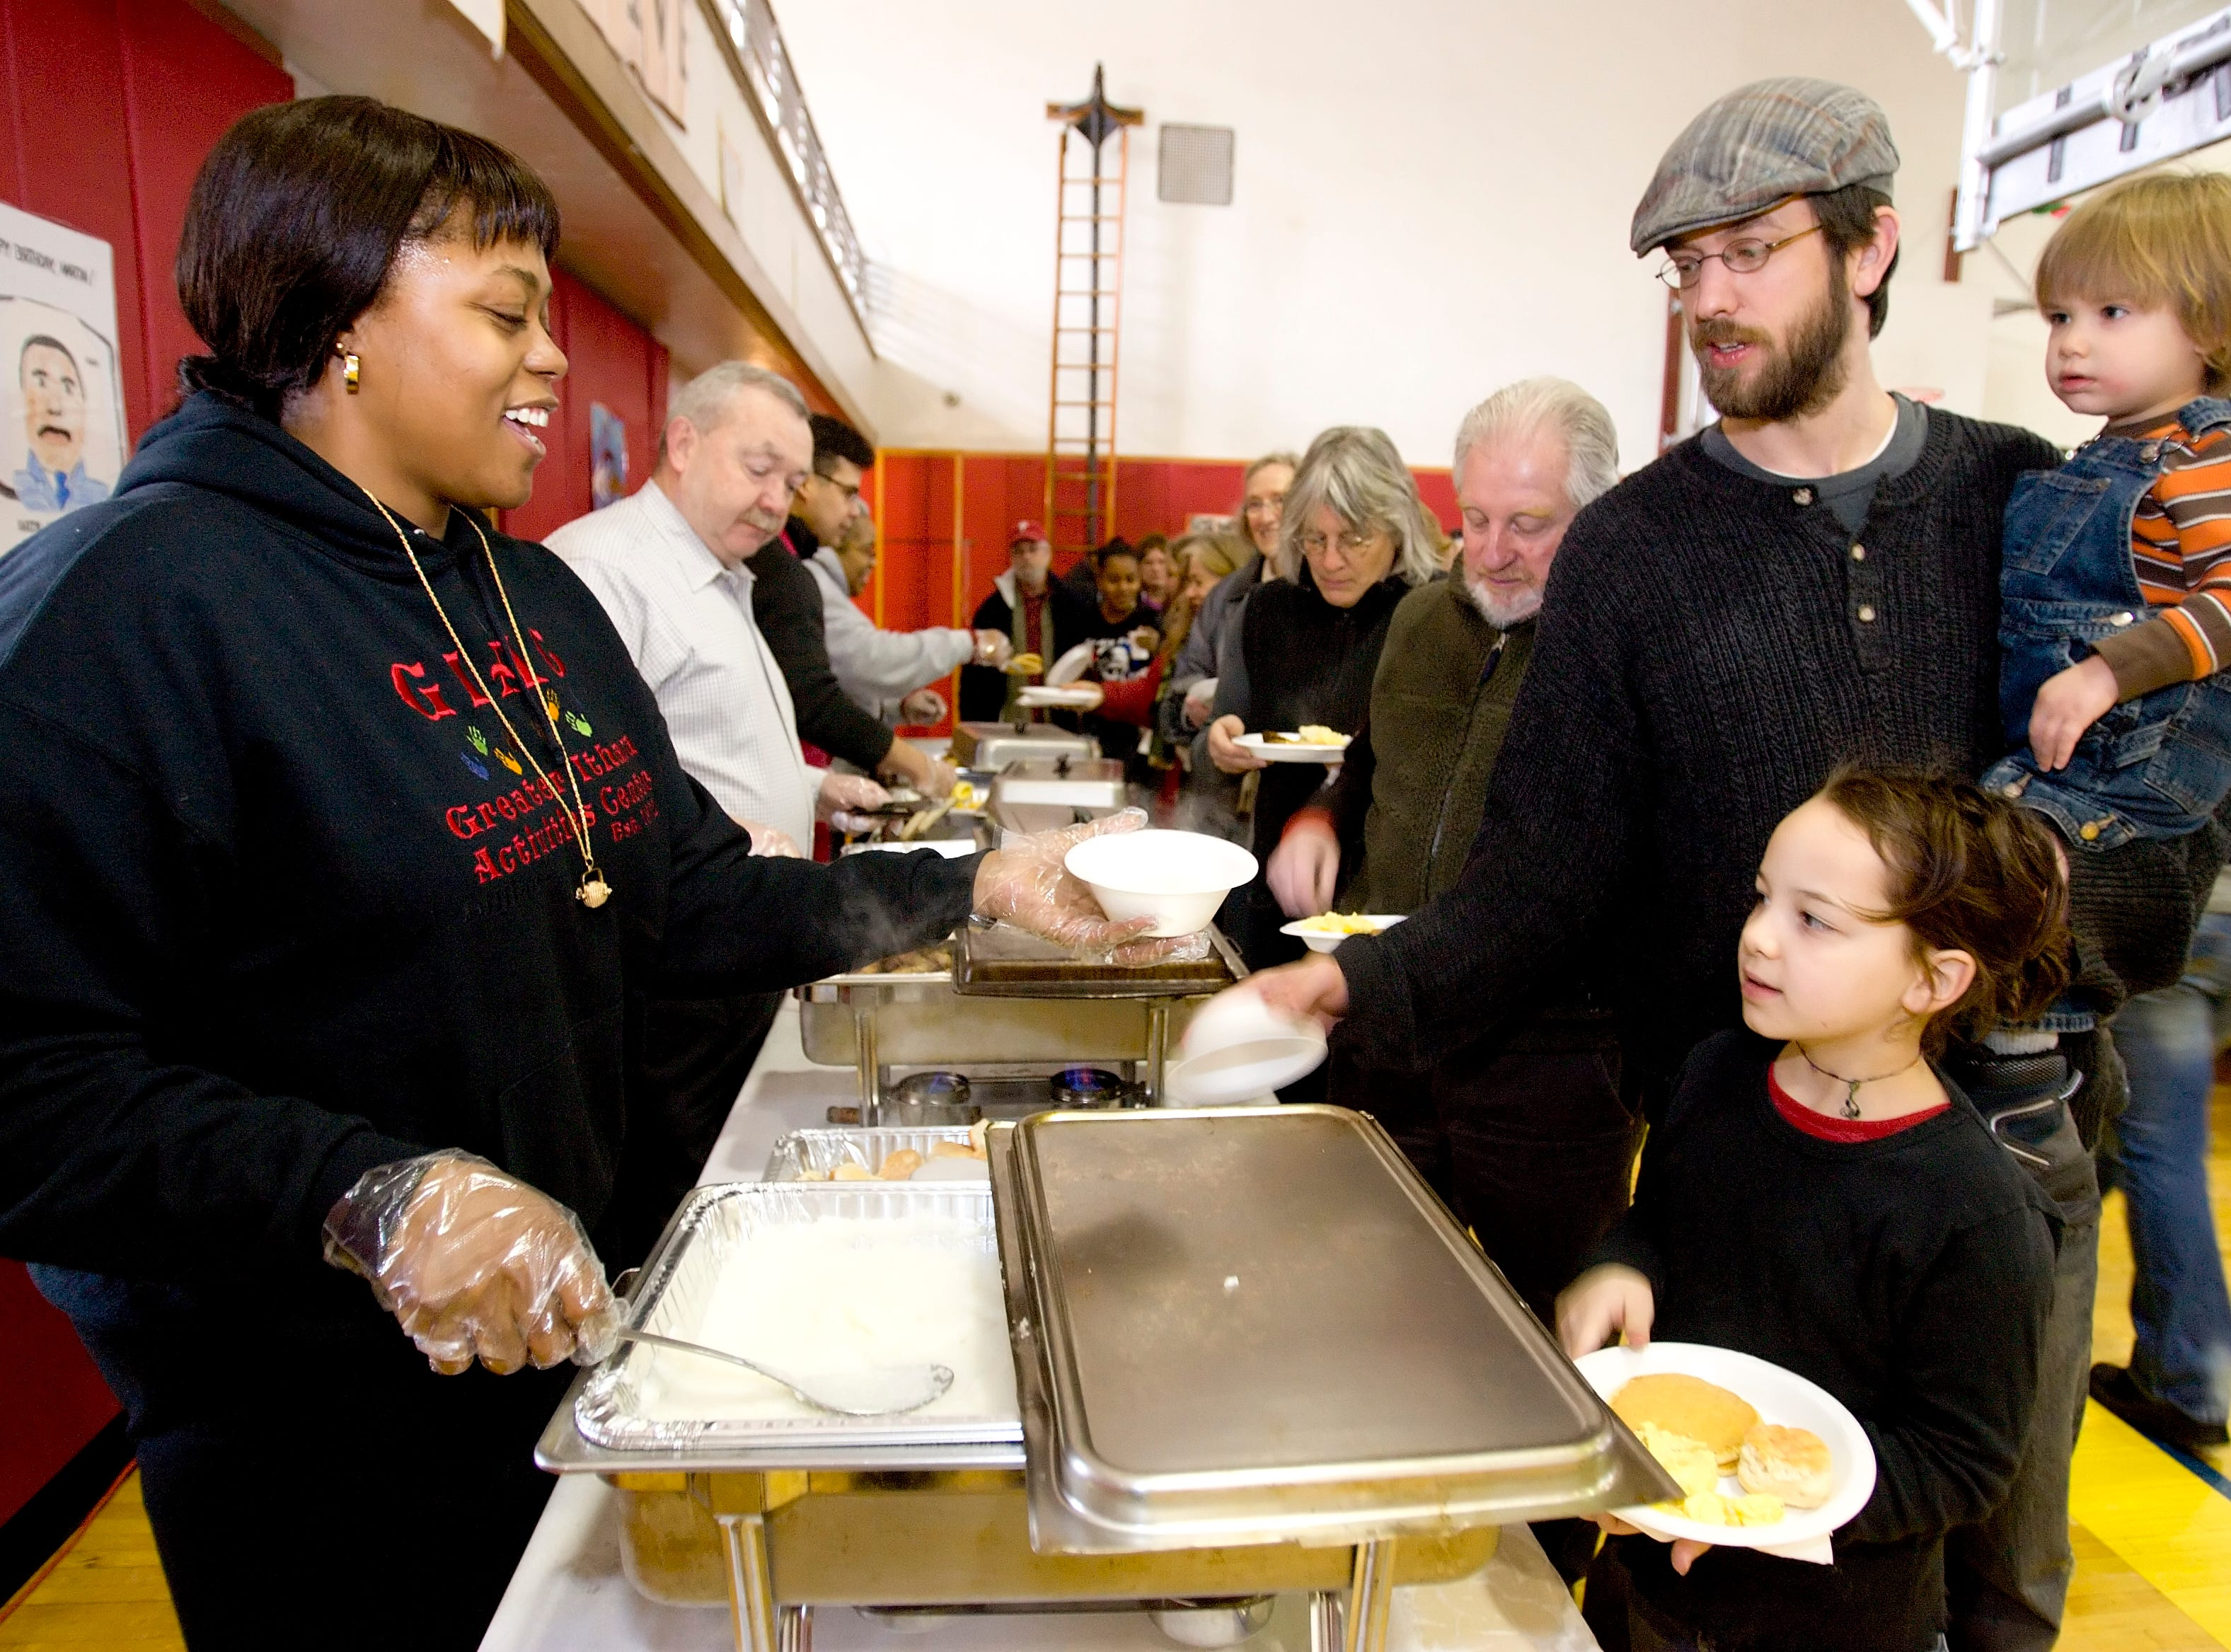 2009: Rasheedah Boyd, left, serves grits to Mark Thornton and his two children Samuel, left, and Alyssa Thornton on Saturday at the Greater Ithaca Activites Center's Annual Martin Luther King Jr. Breakfast.